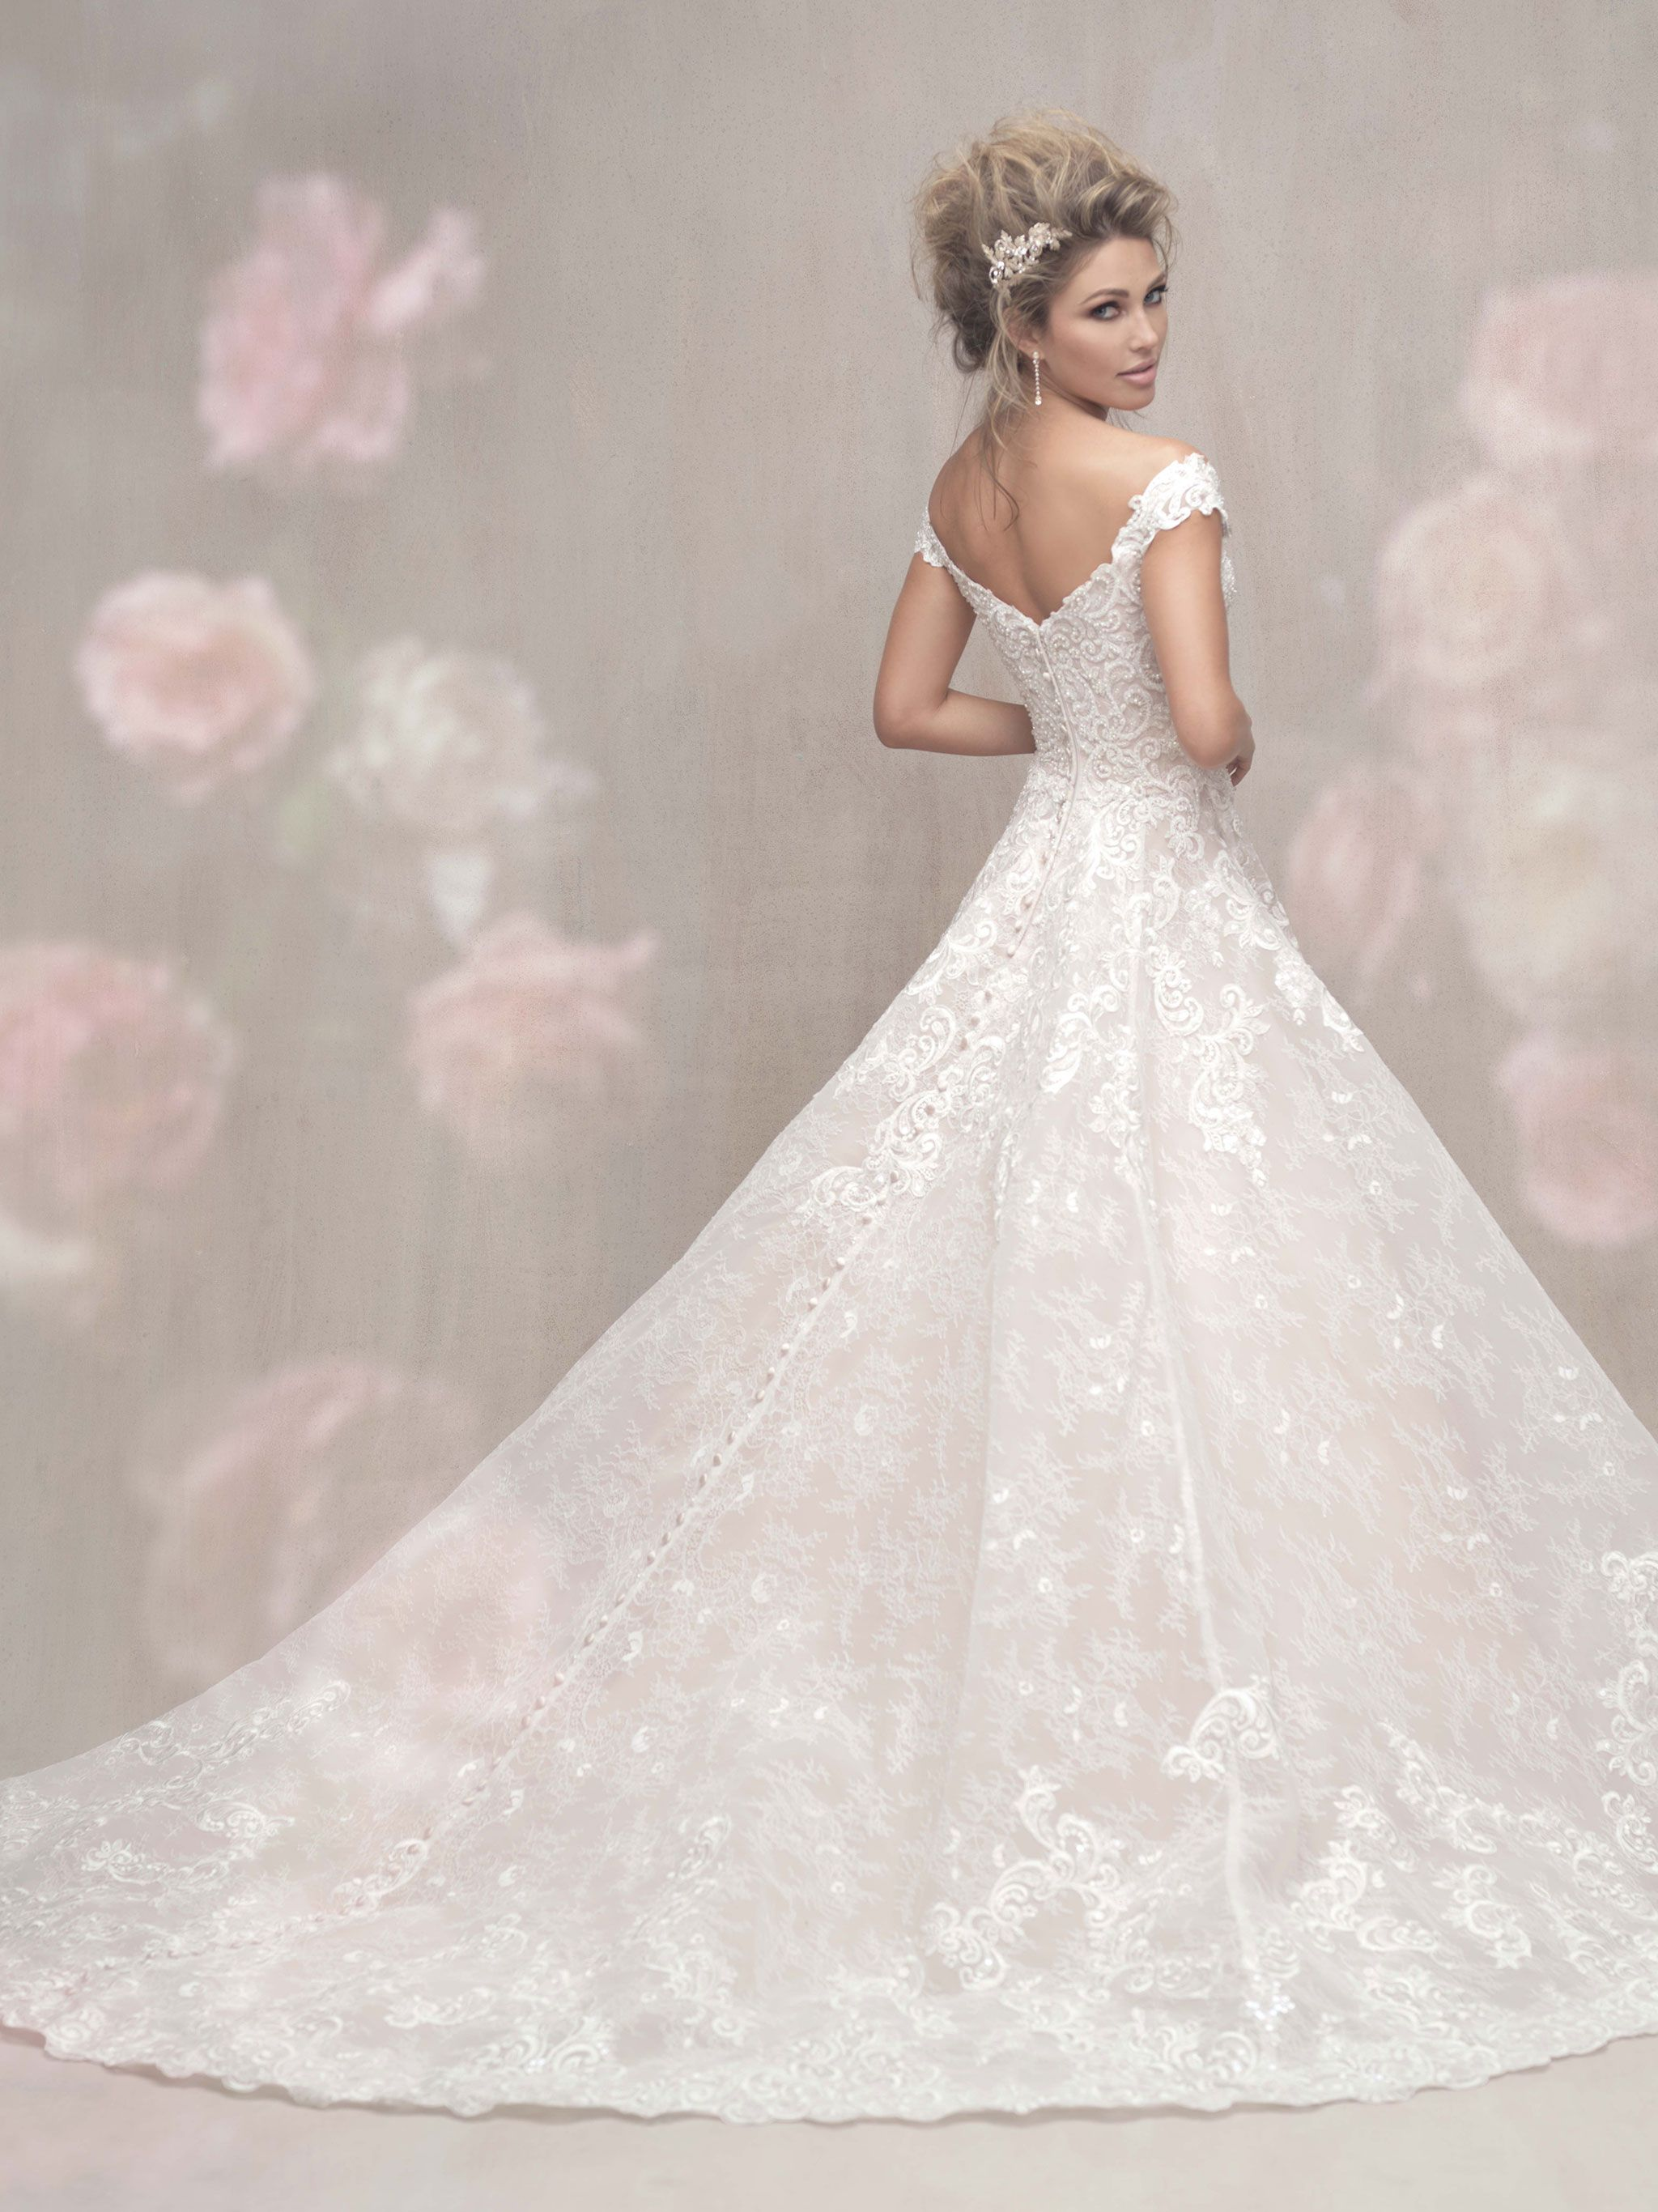 Lace wedding dress designers  Another look at the Allure C  New Arrivals  Pinterest  Allure